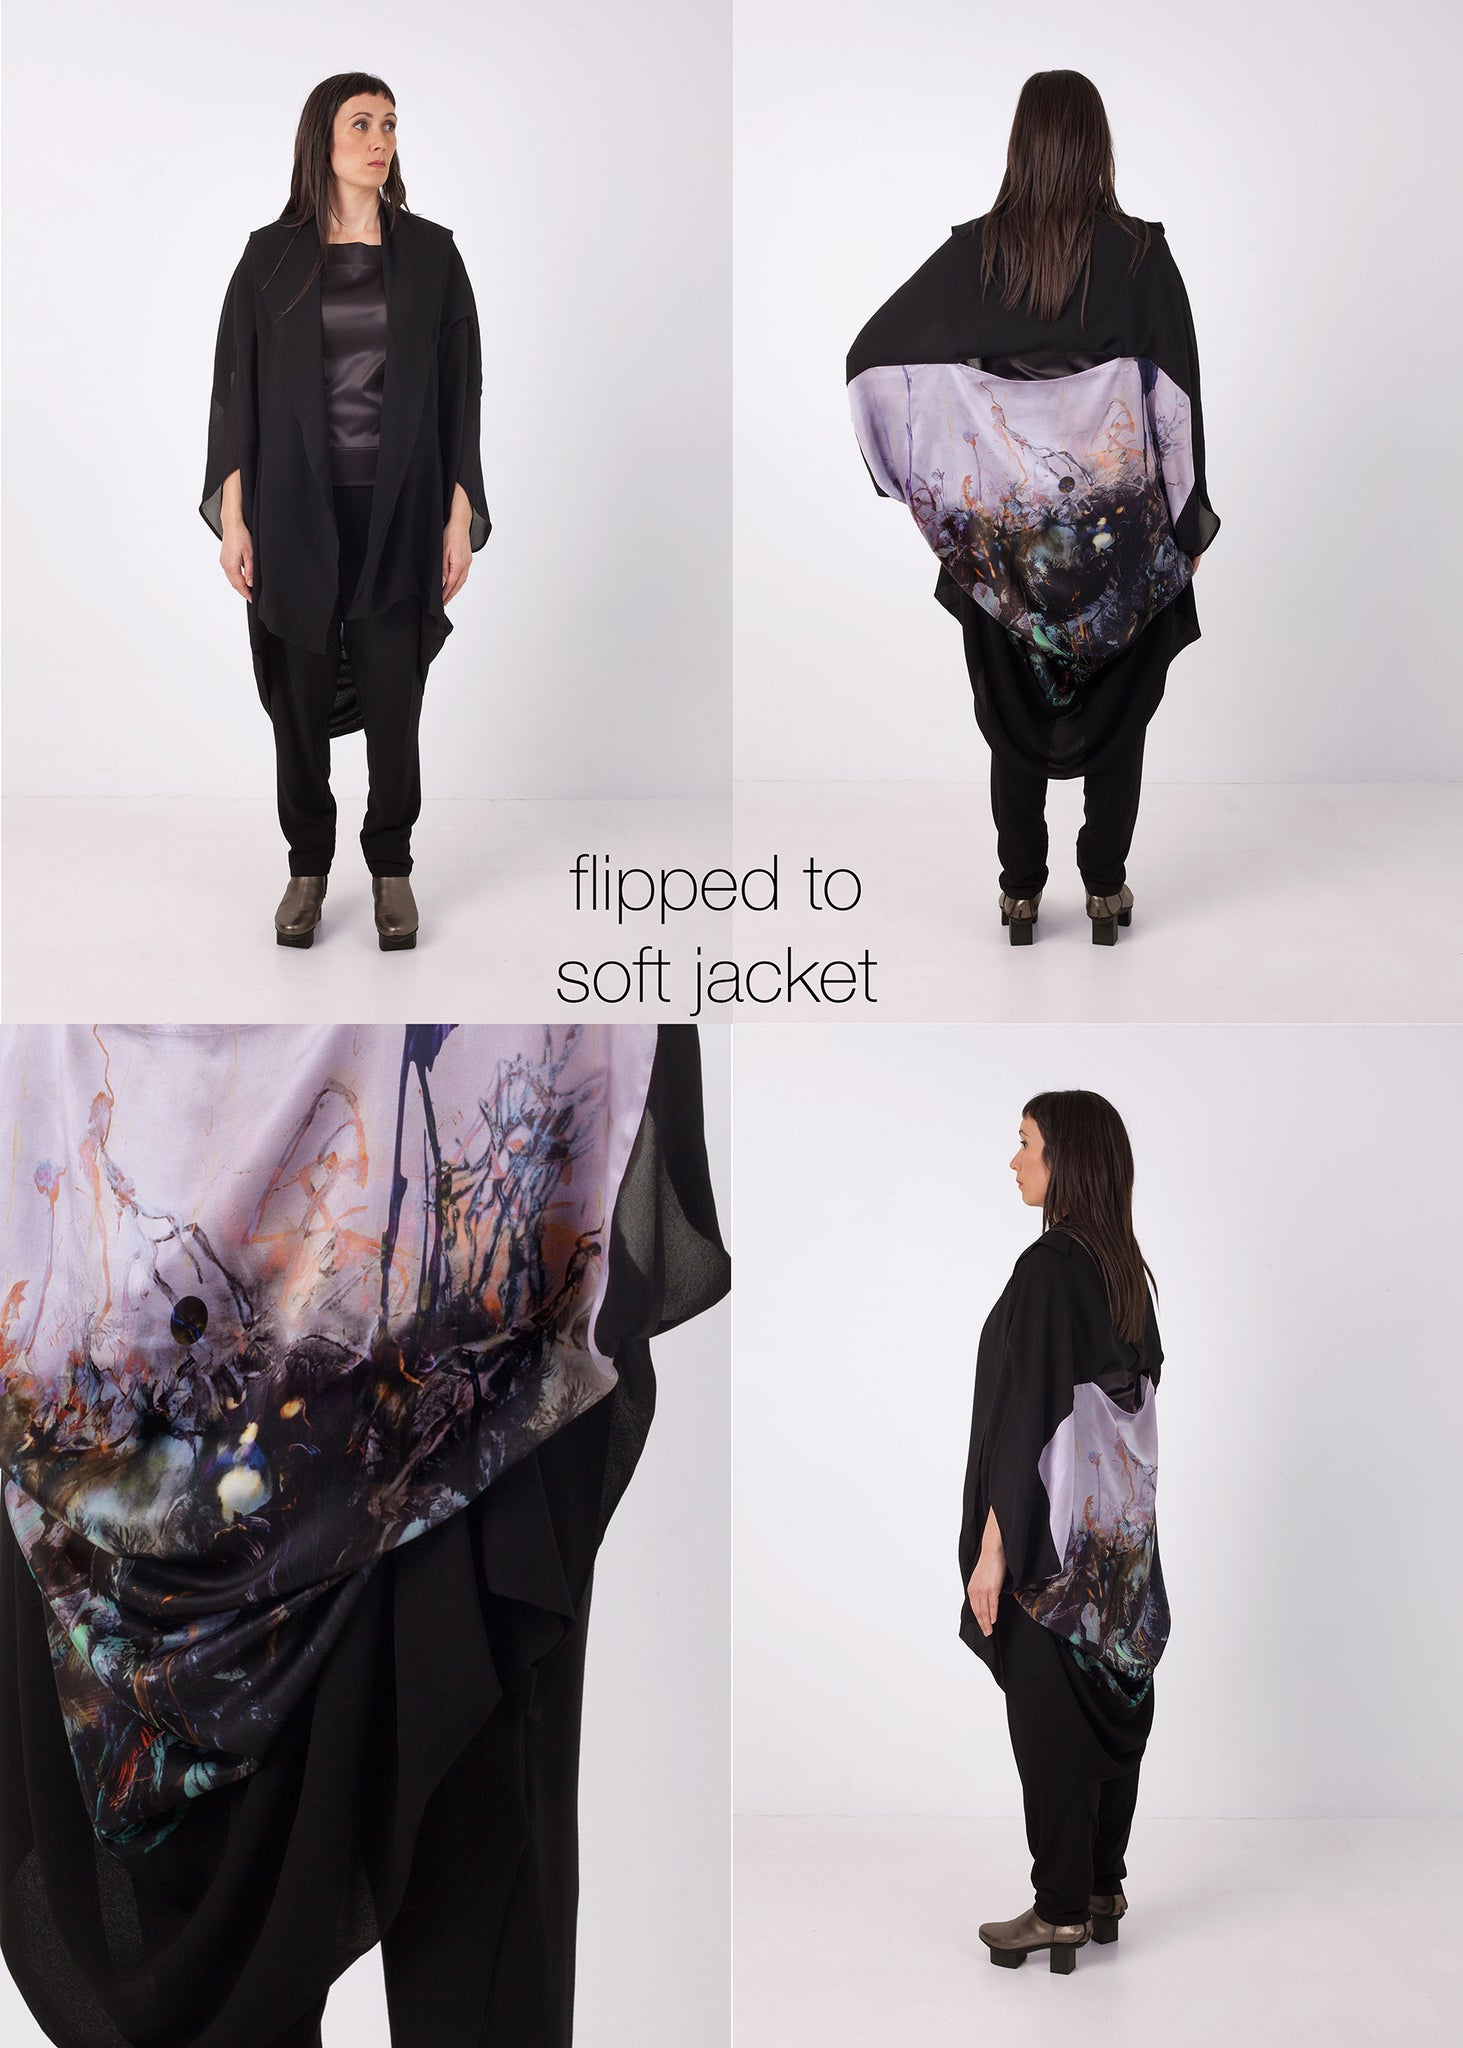 frasercrowe_slashneck_twofold_top_charcoal_drawing_print_black_soft_jacket, ethical fashion, sustainable fashion, designer clothes, plus size clothing, textile print clothing, luxury online fashion, slow fashion